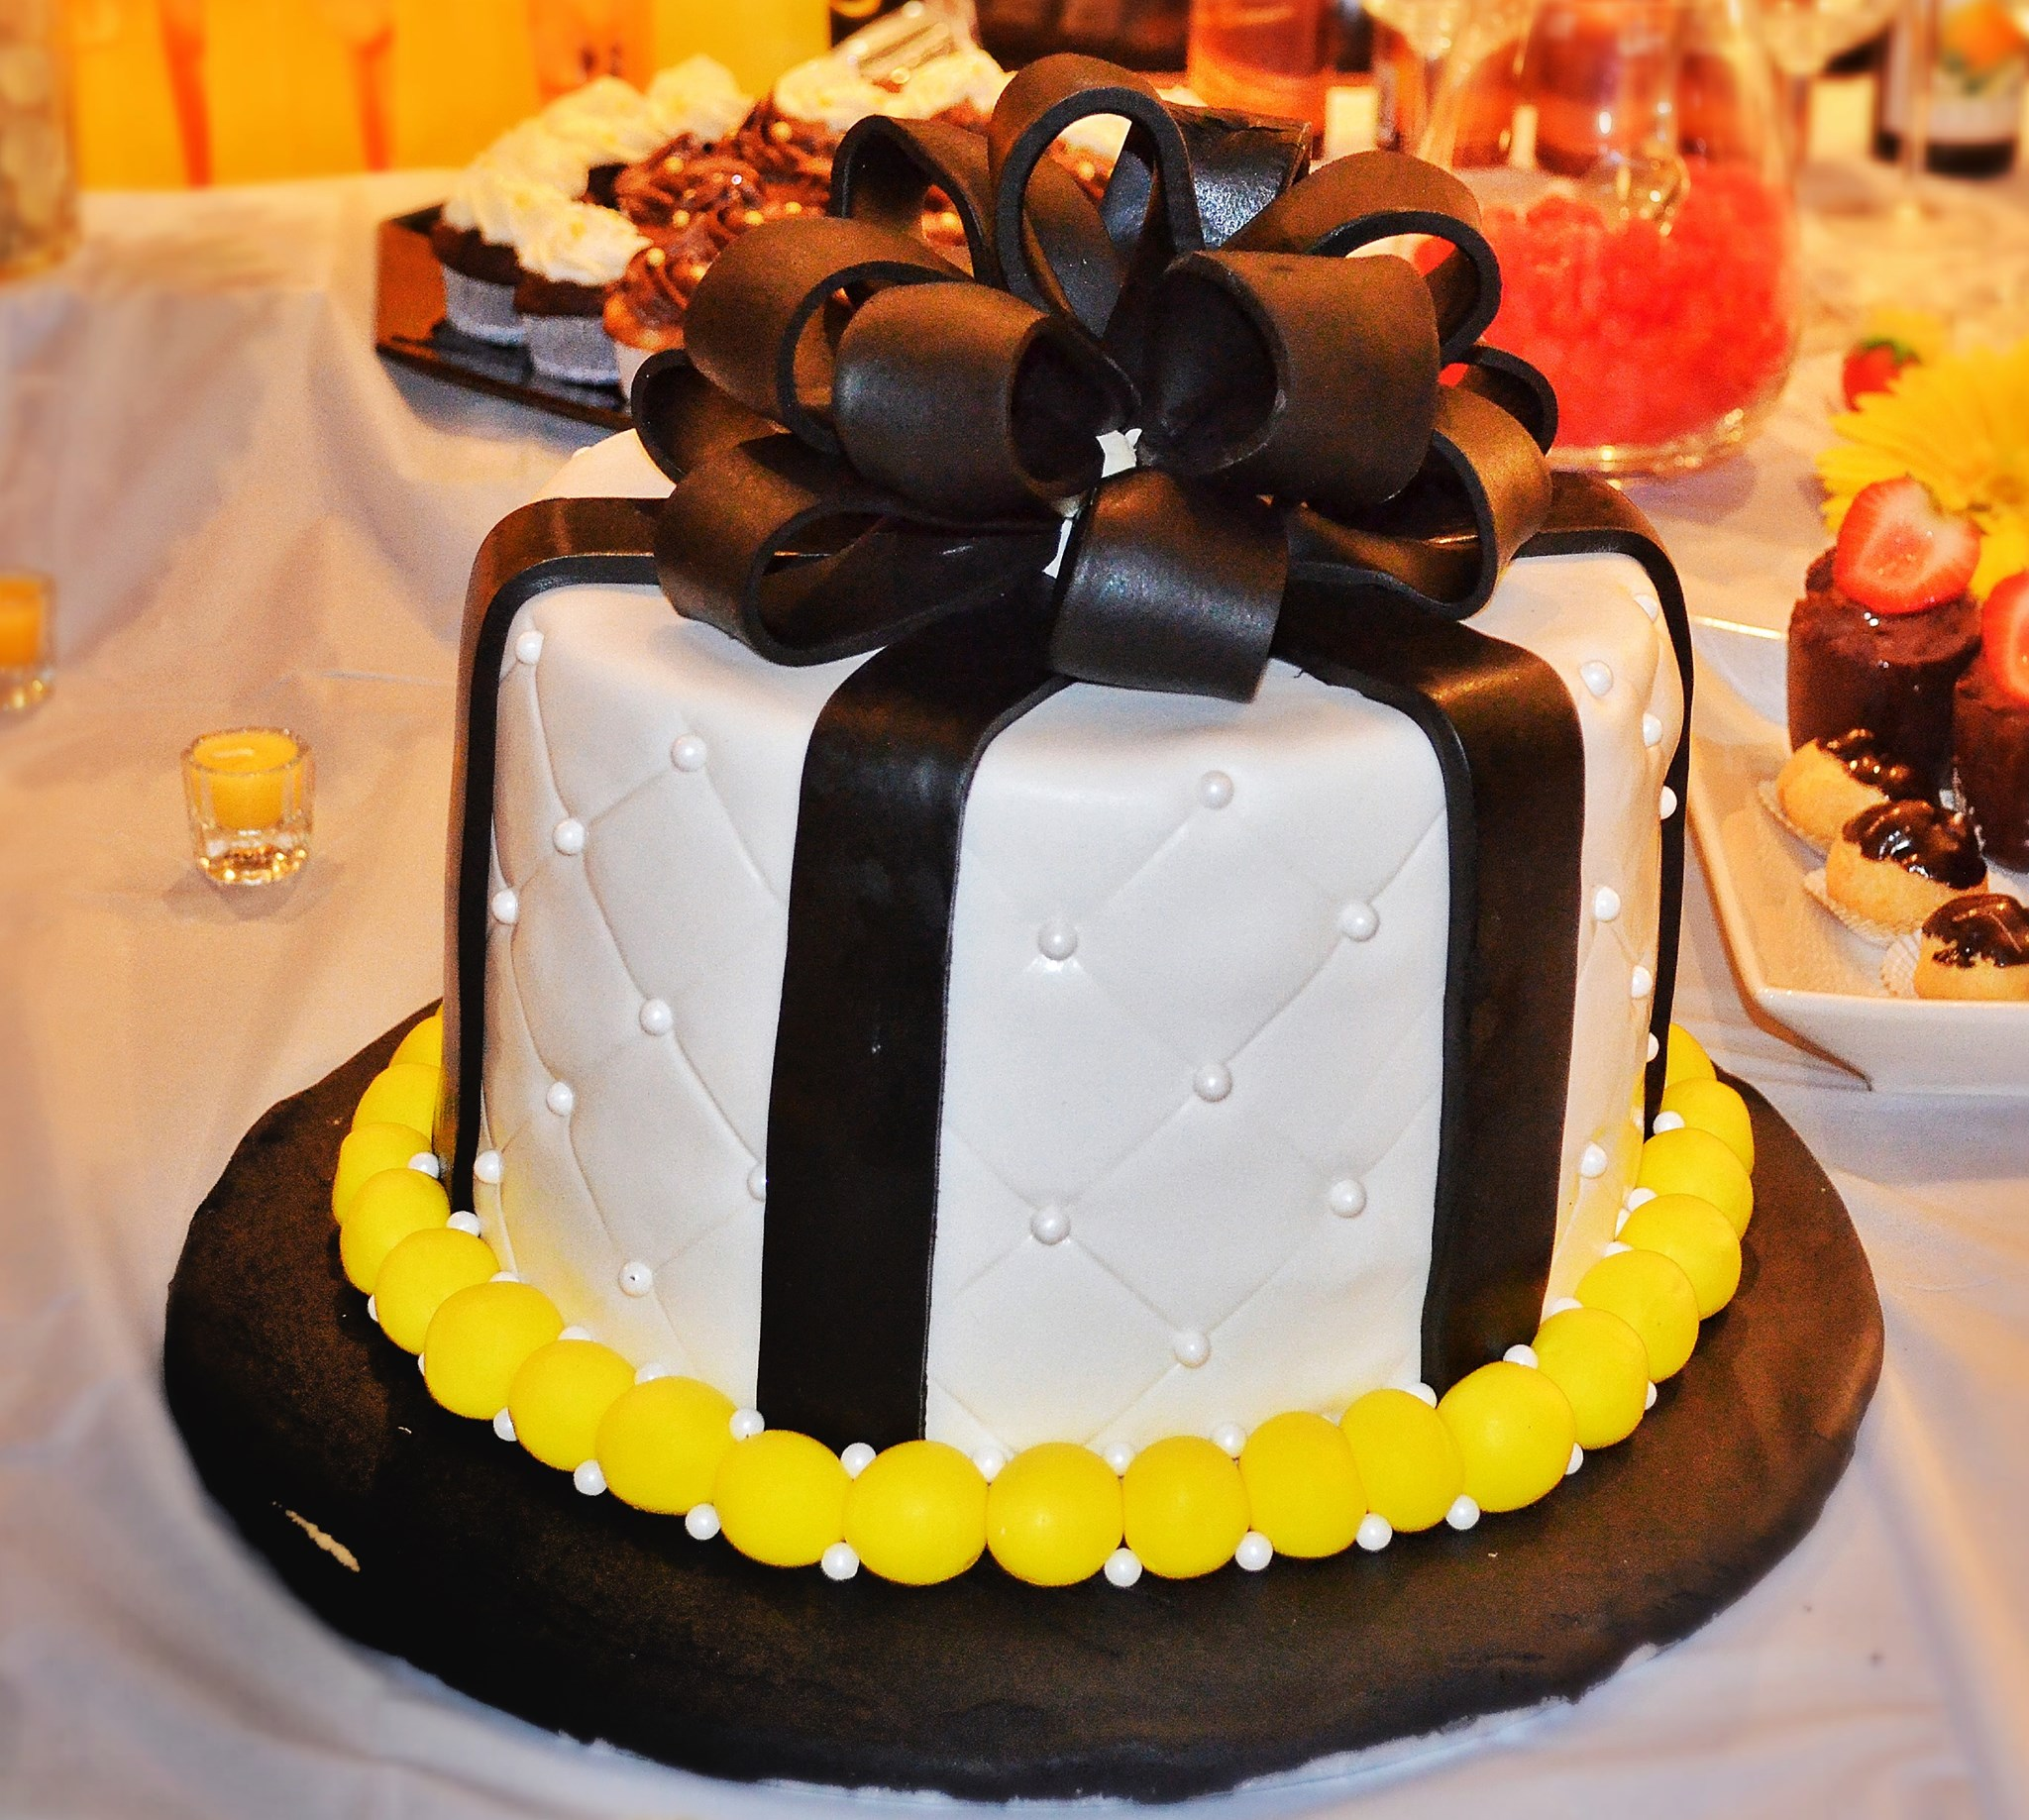 Girl Birthday Cake 30.jpg